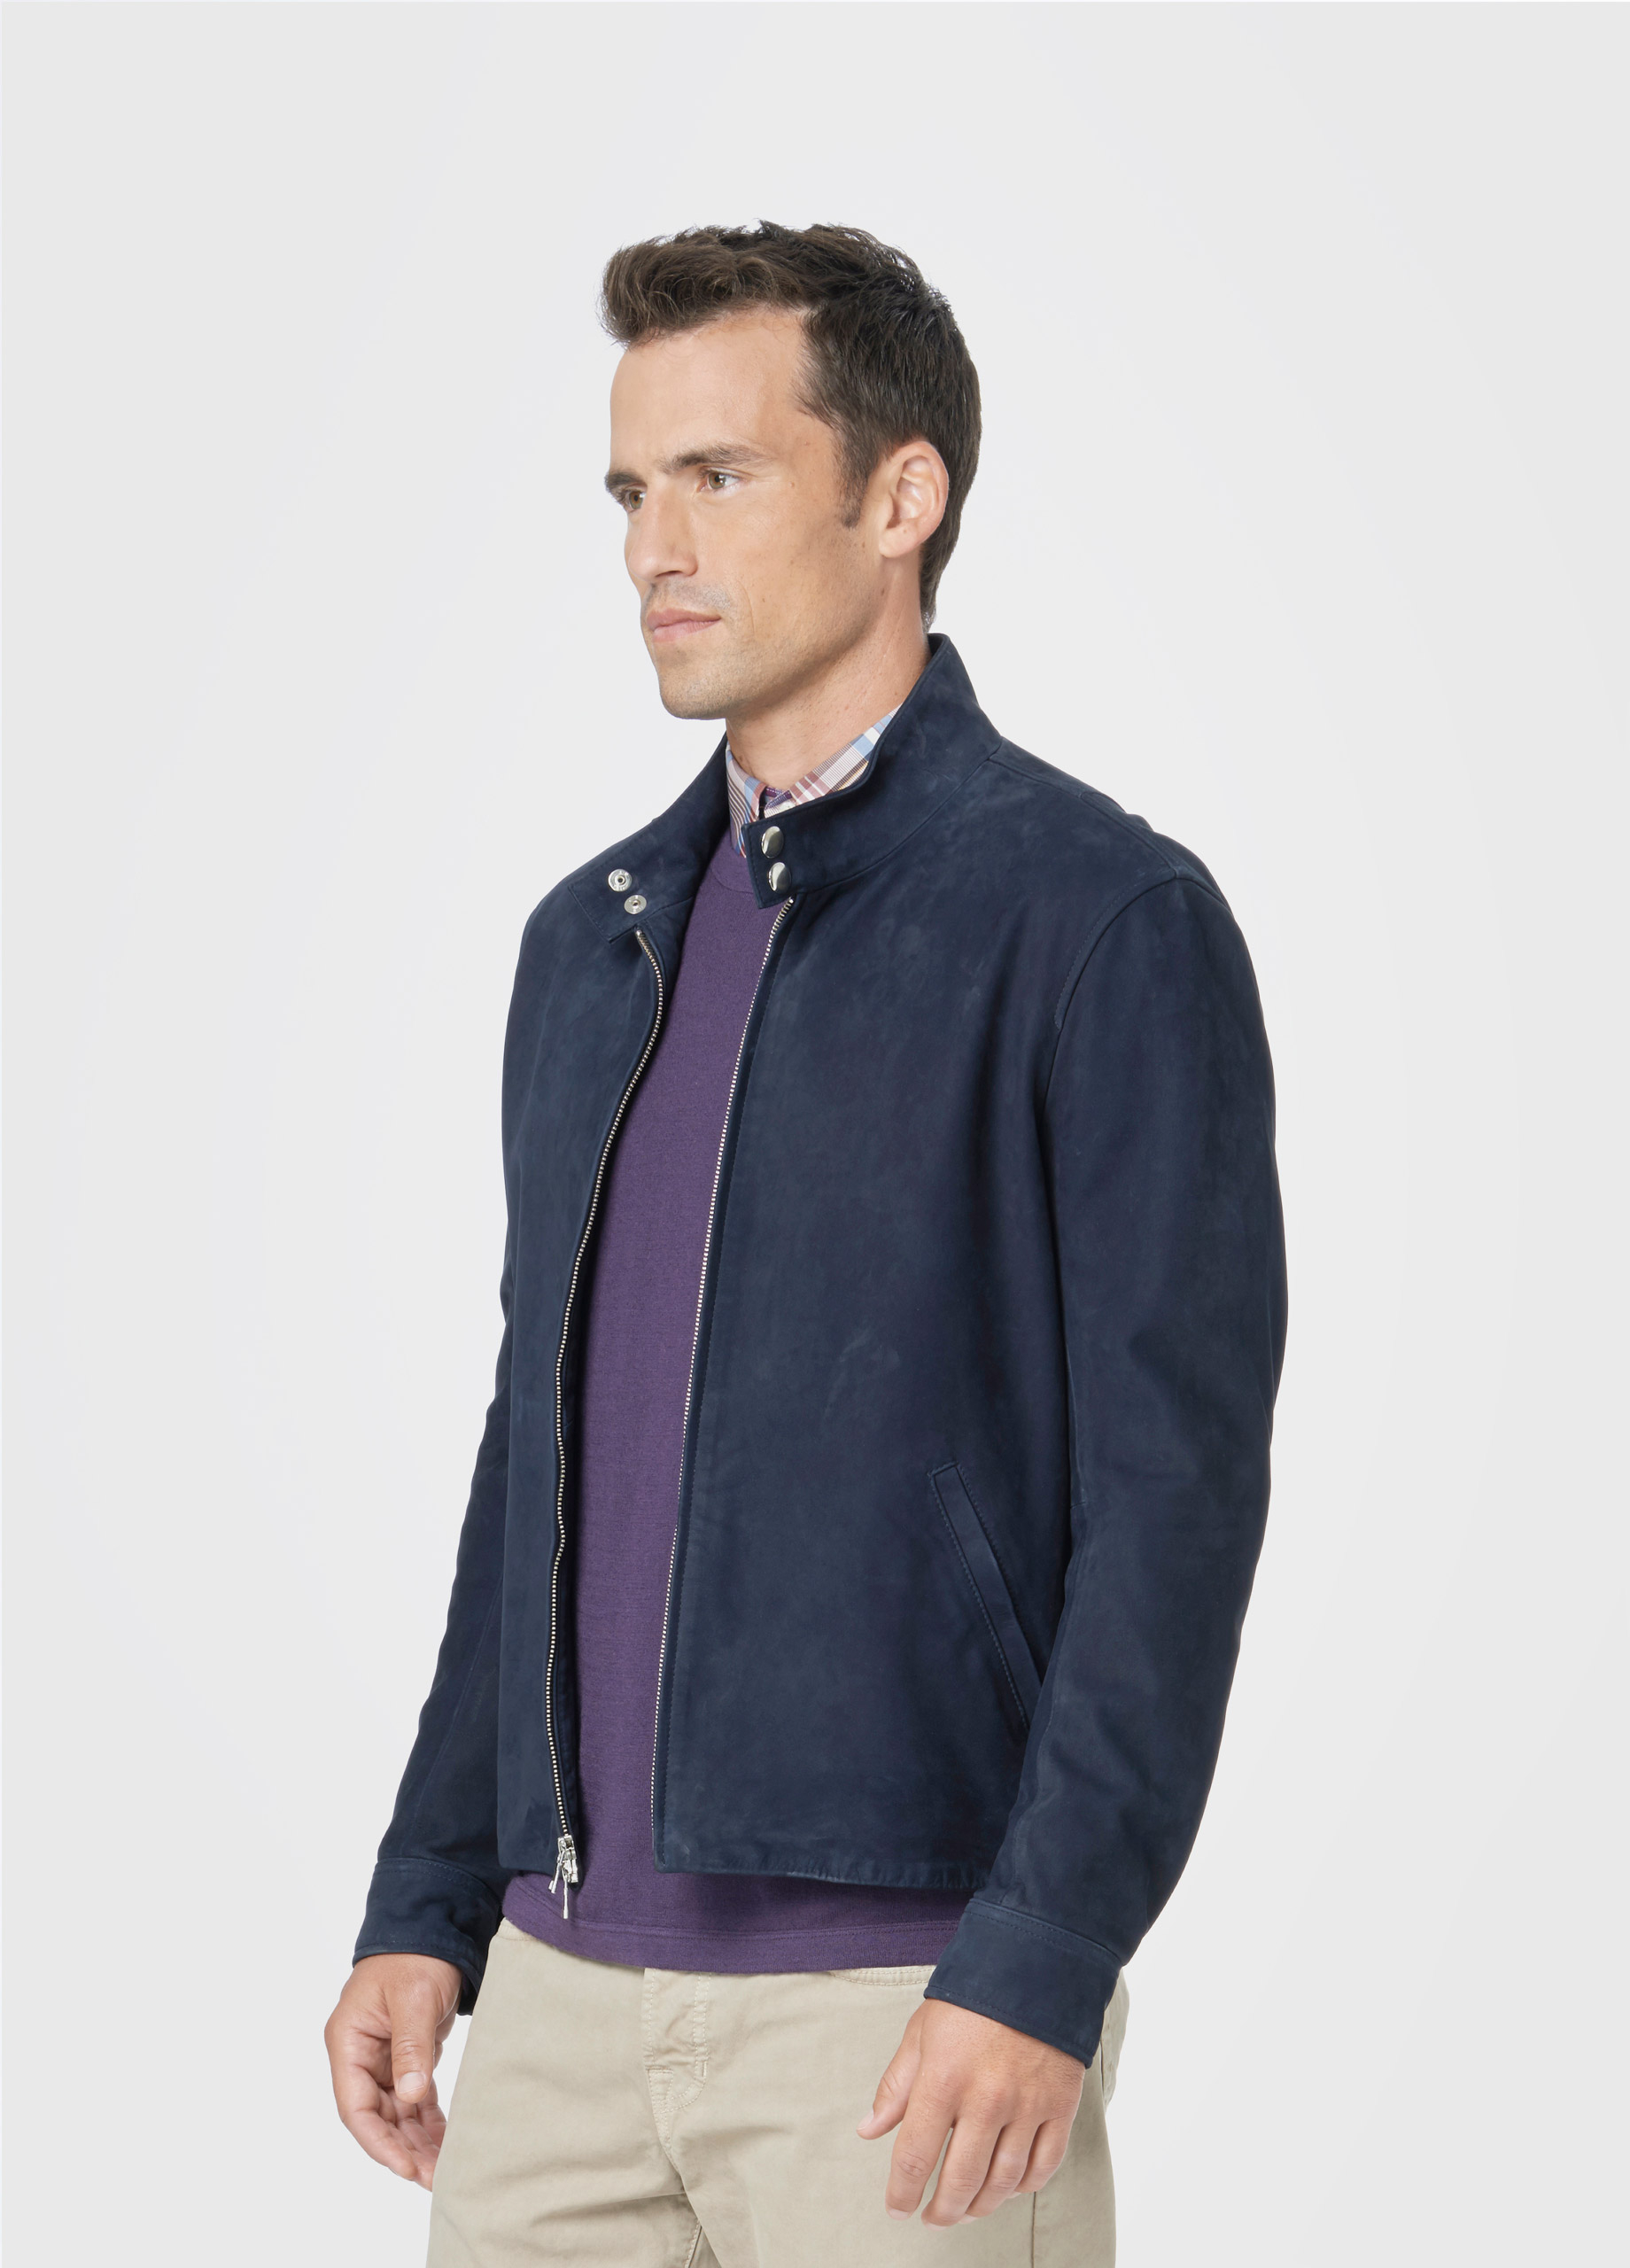 Suede Jacket Outfits For Men 20 Ways To Wear A Suede Jacket: Vince Harrington Suede Jacket In Blue For Men